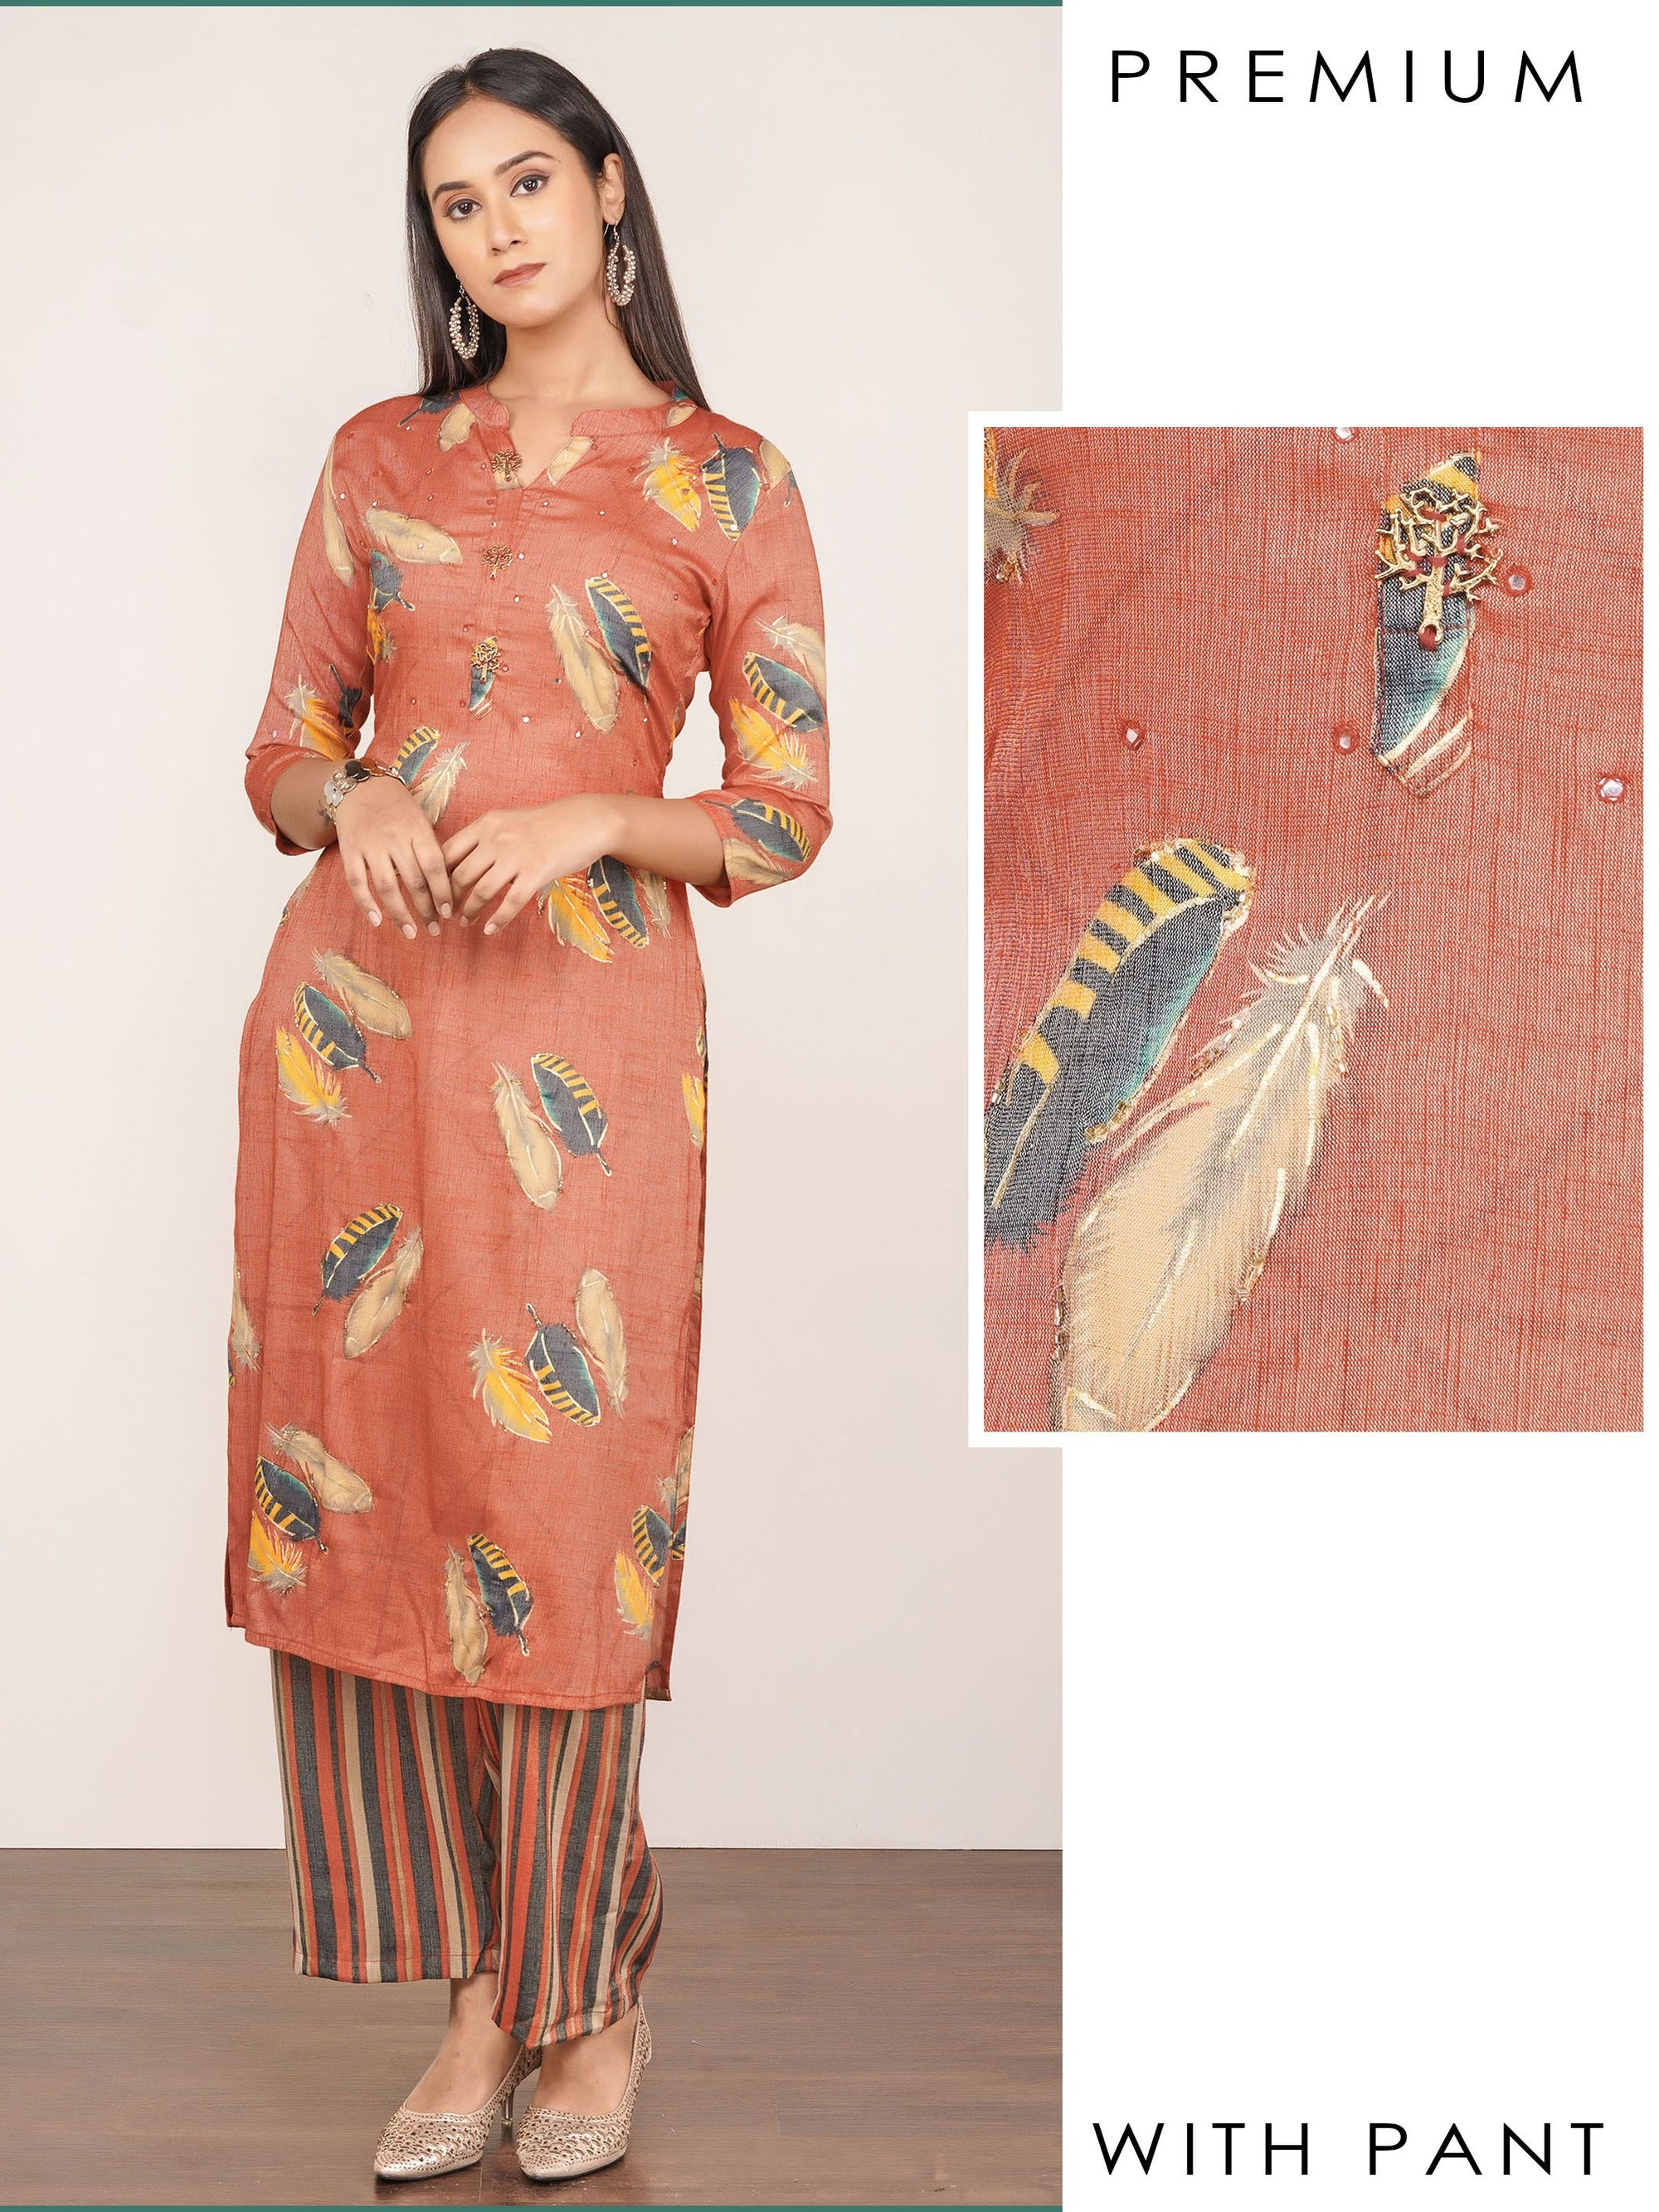 Cutdana Embellished, Feather Printed Kurti & Striped Pant Set – Orange